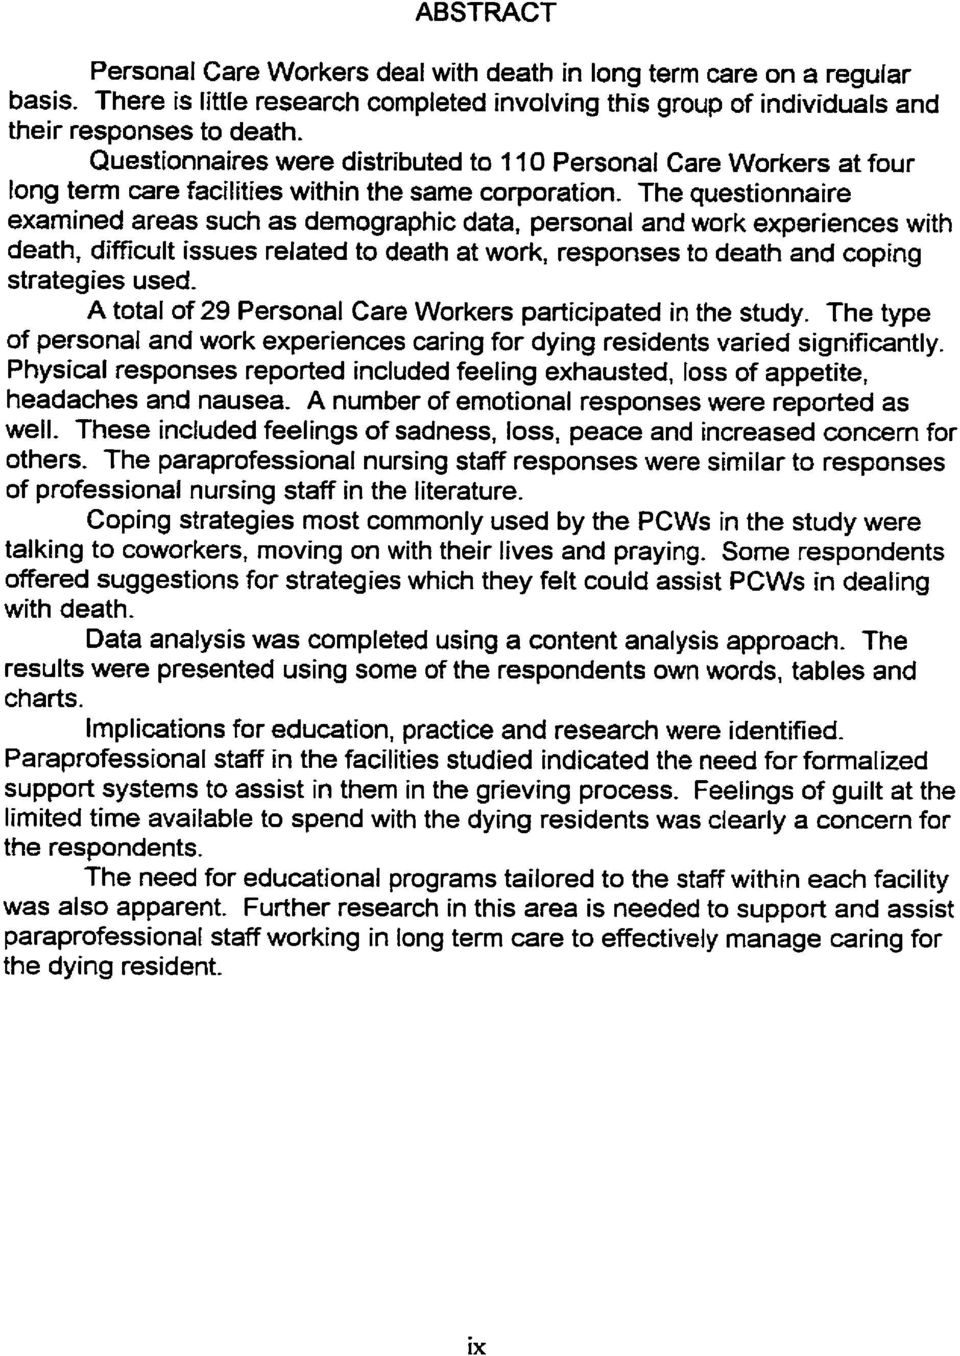 nursing staff experiences and responses Medical staff perceptions of a mature rapid response system at a large tertiary  hospital findings  medical emergency response team, nurse-physician  relationships, patient deterioration, rapid  previous experience in emergency  situations.